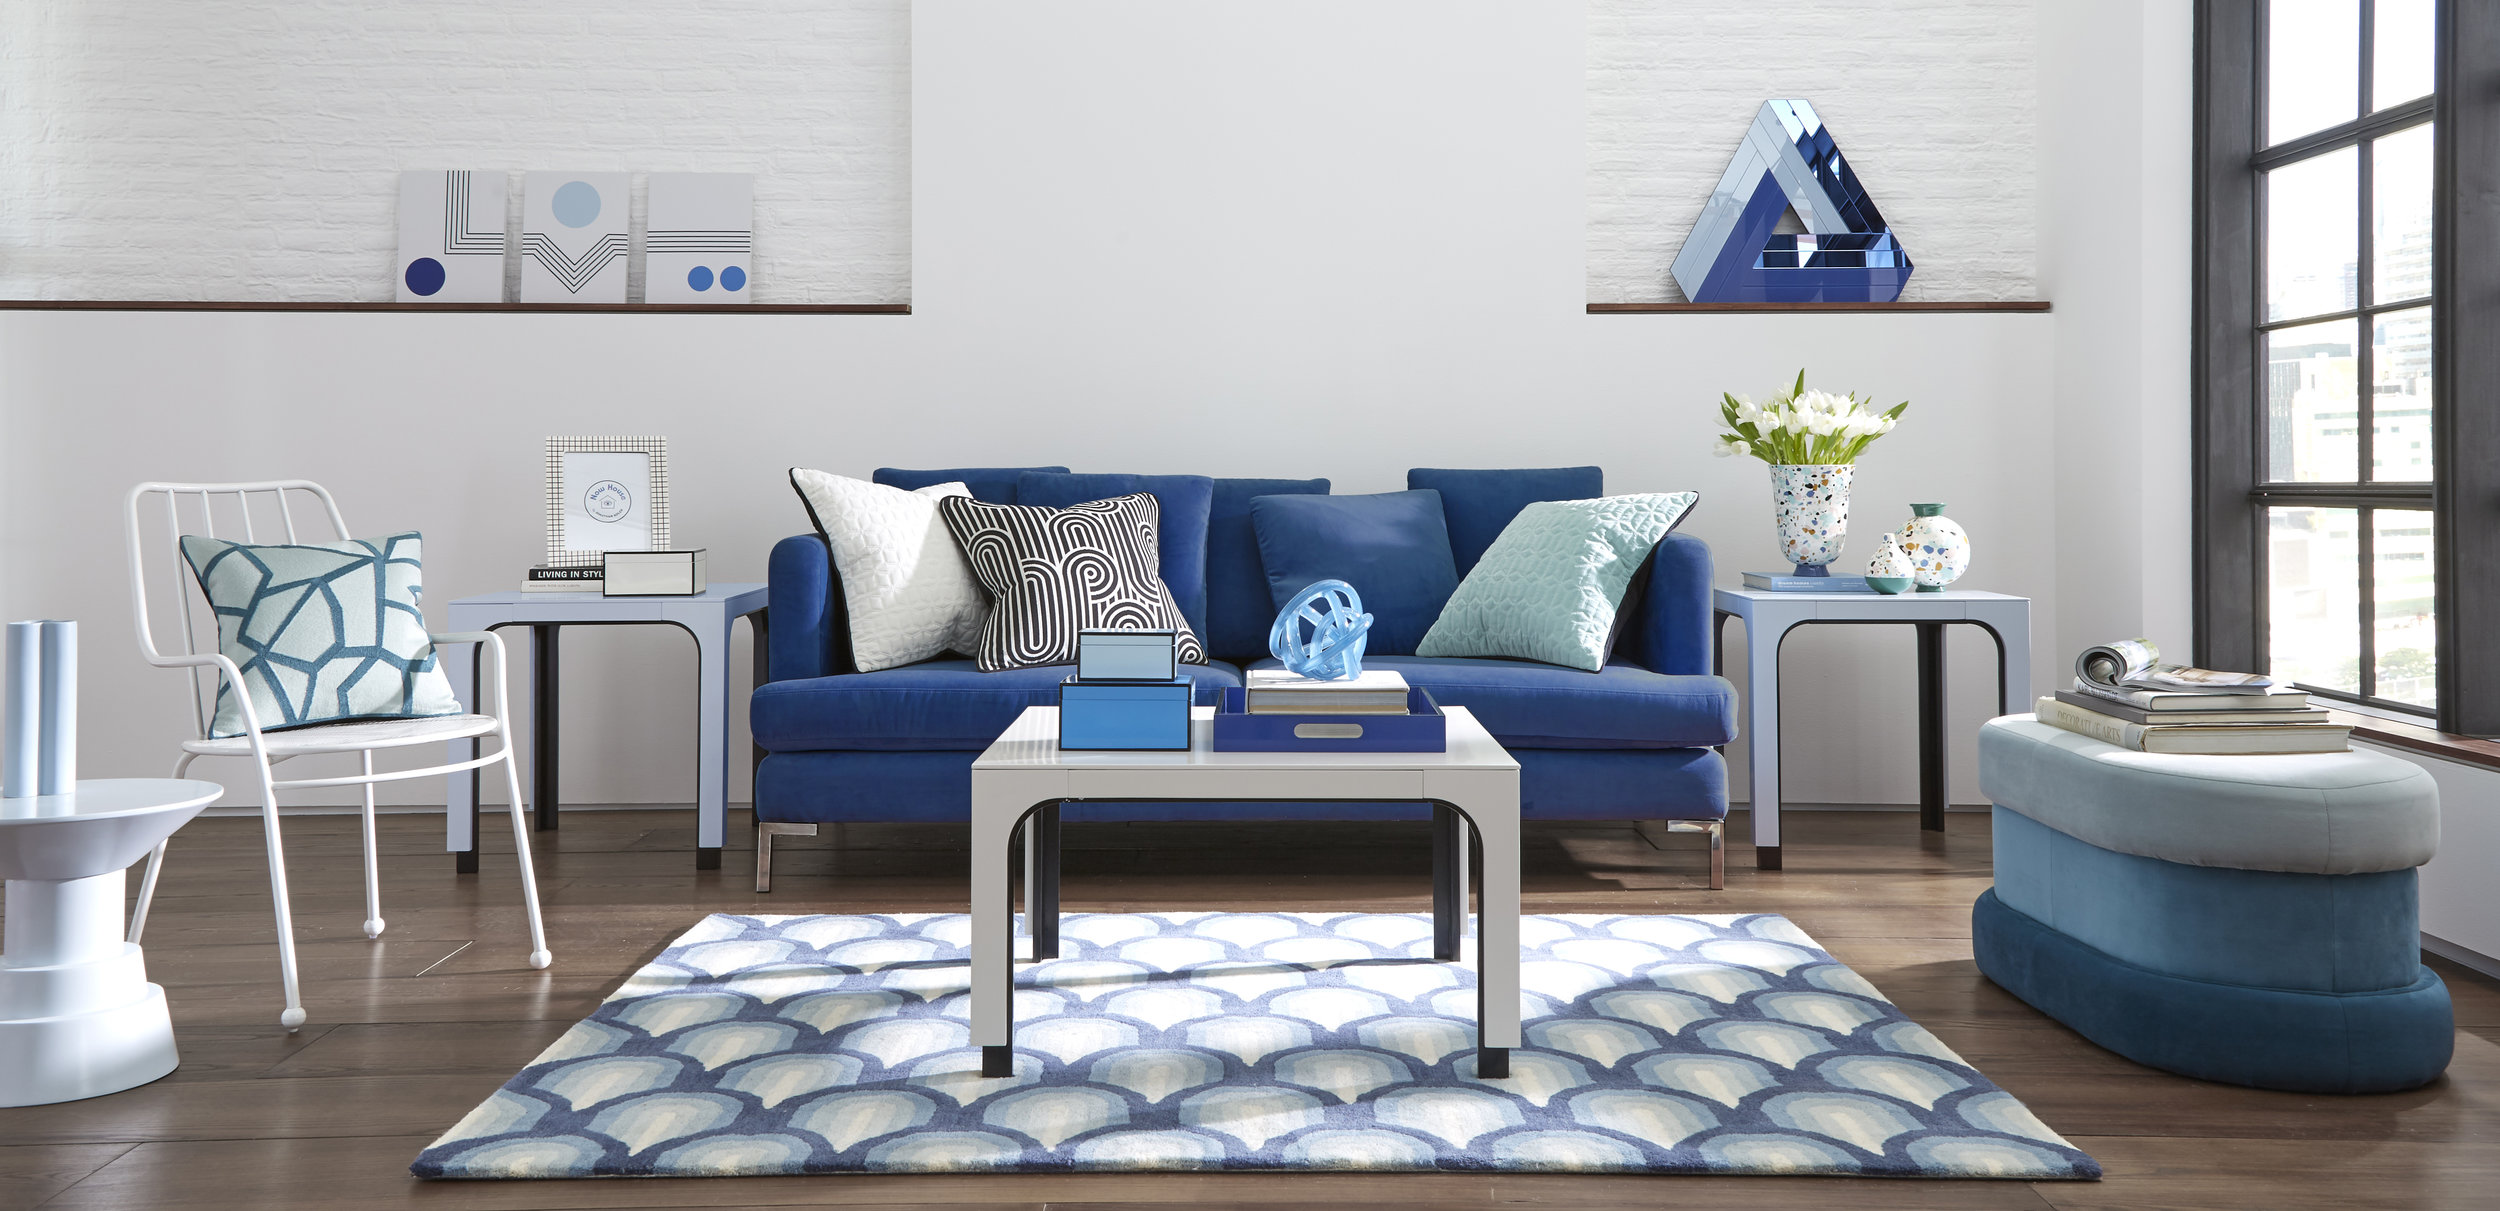 Now House by Jonathan Adler Furniture Collection